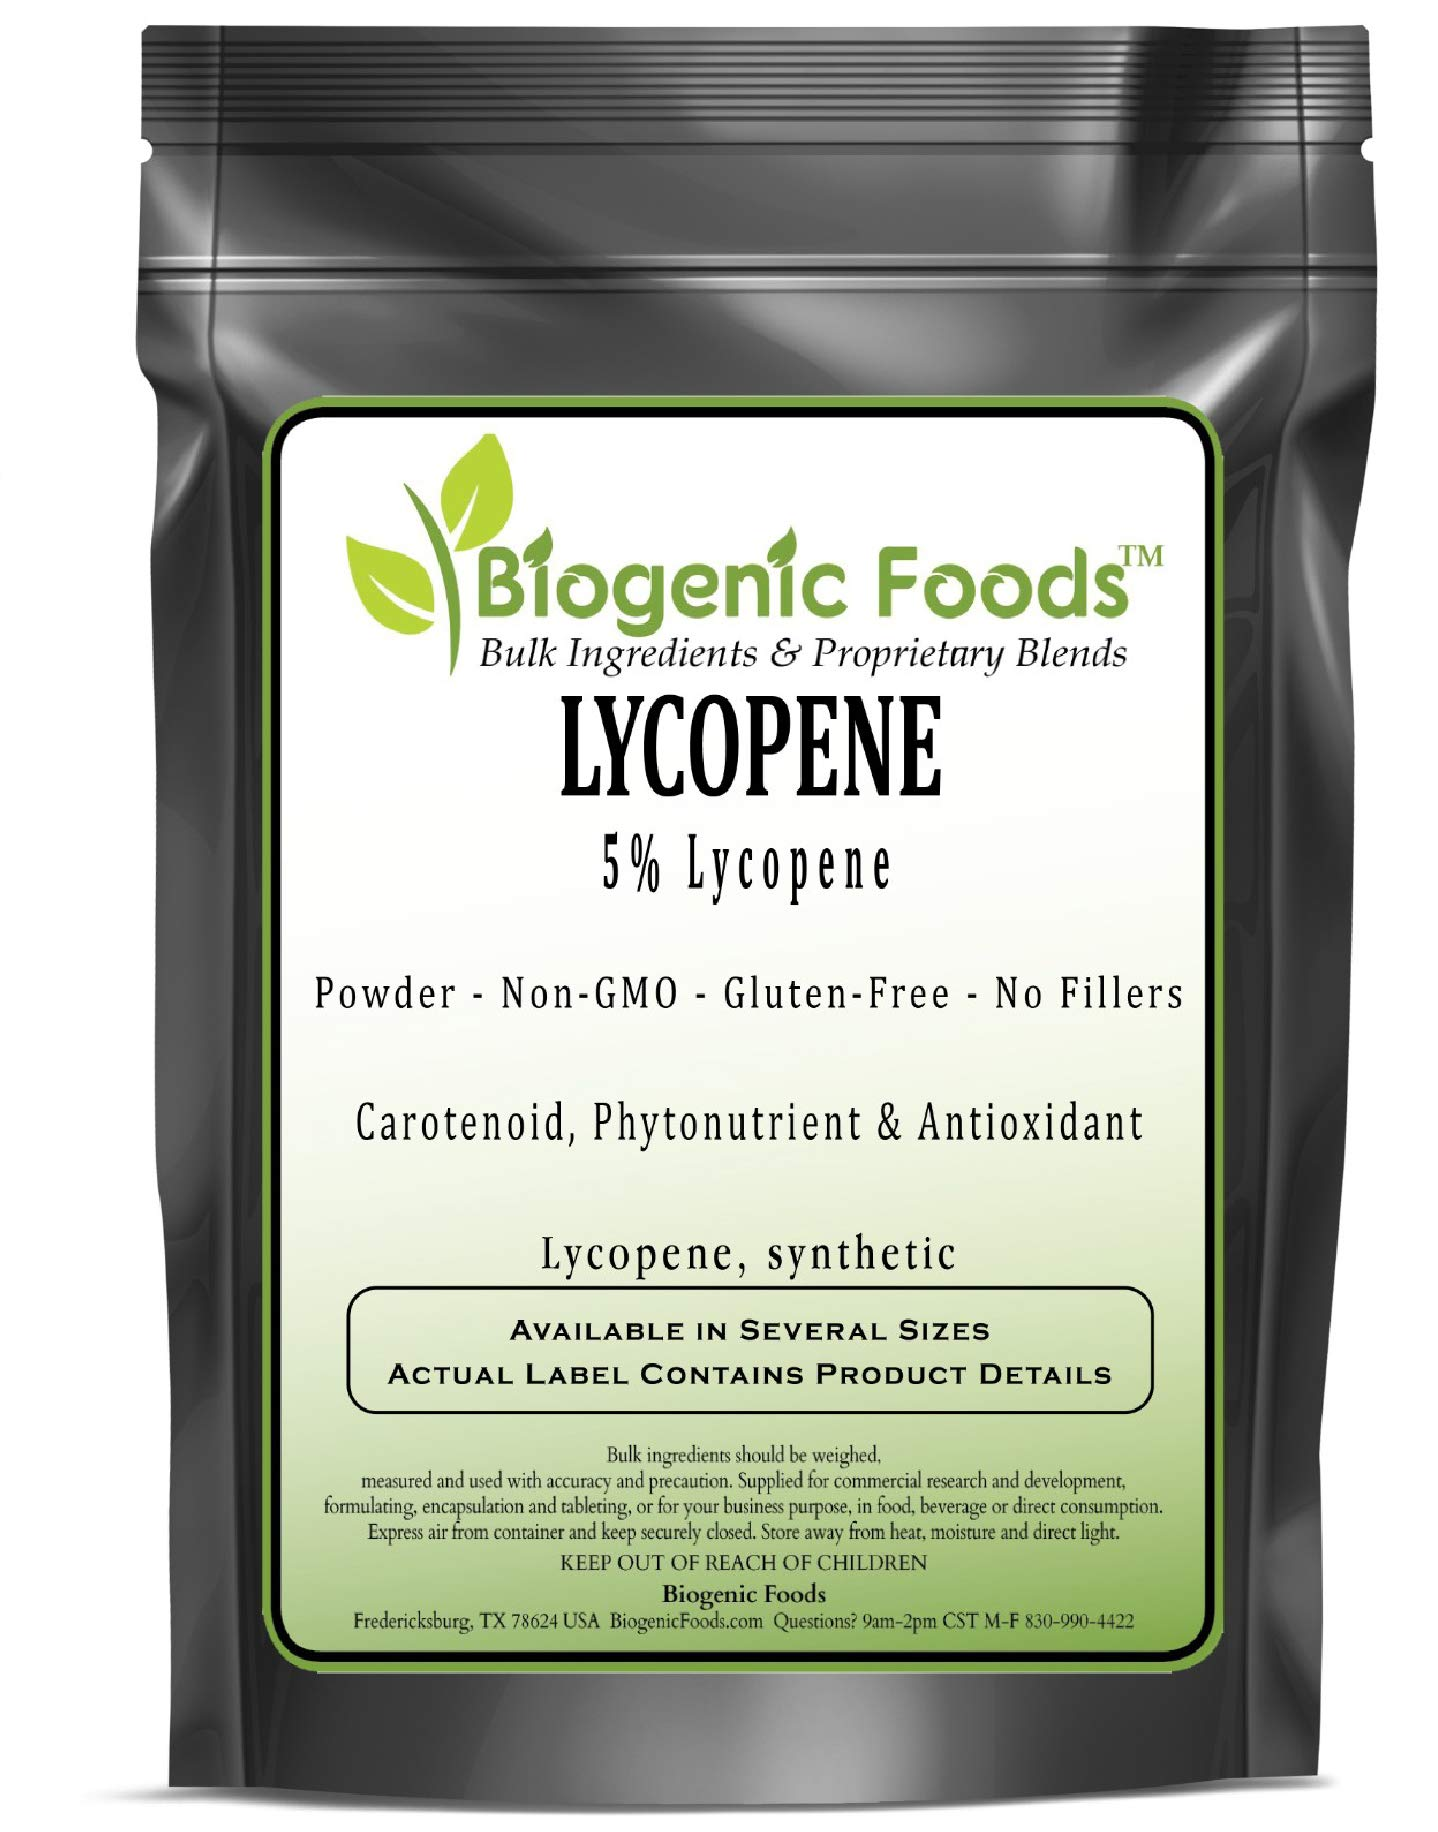 Lycopene - 5% Lycopene Powder Extract (Lycopene, Synthetic), 1 kg by Biogenic Foods